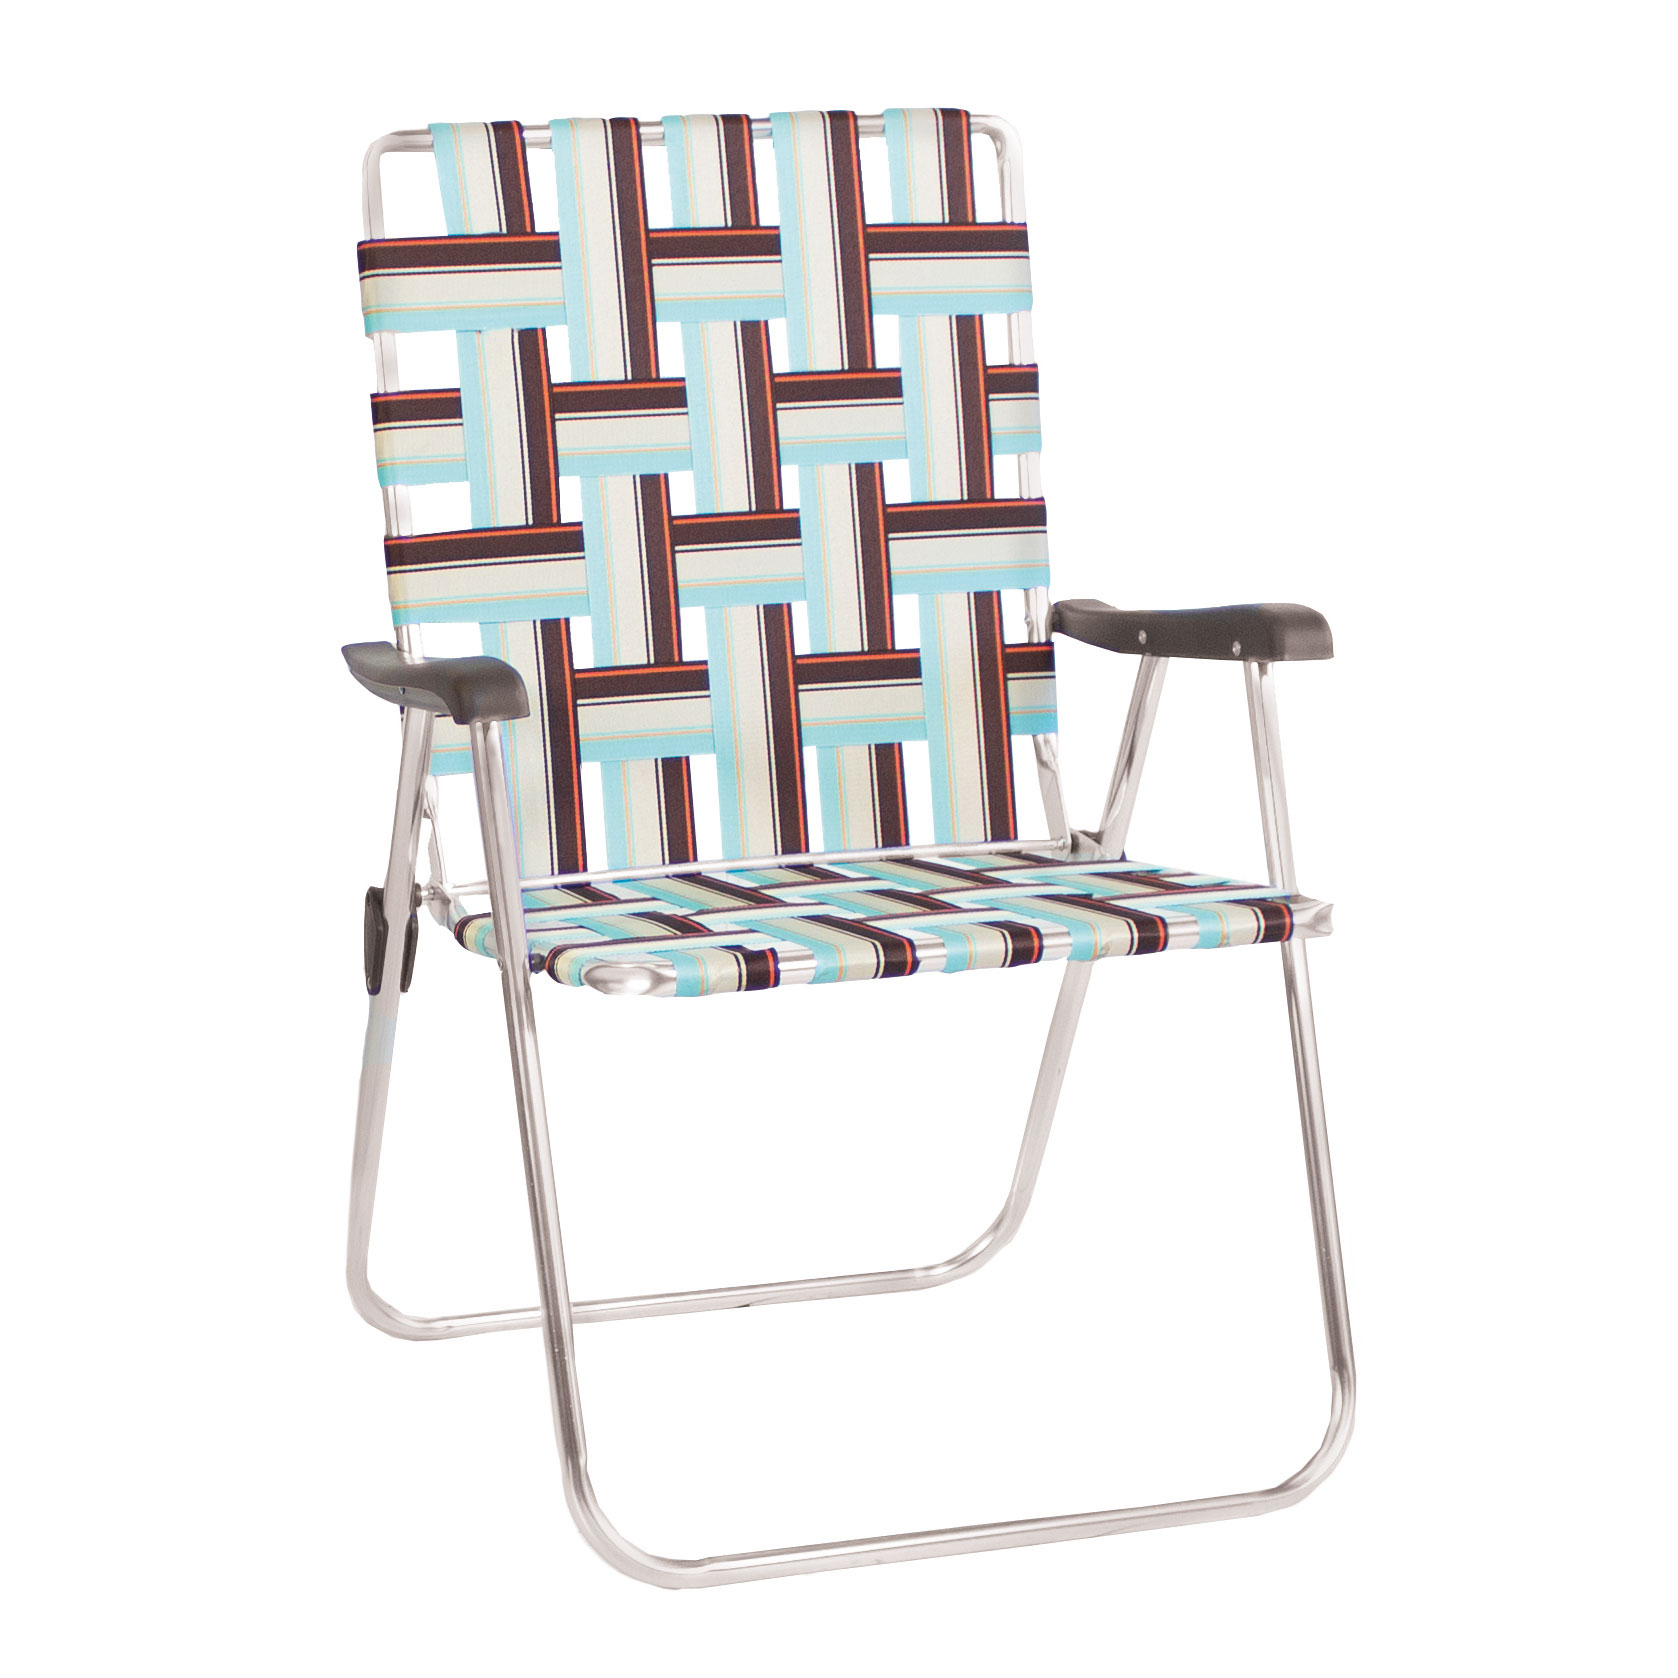 Fezz Backtrack Chair - Teal/Brown